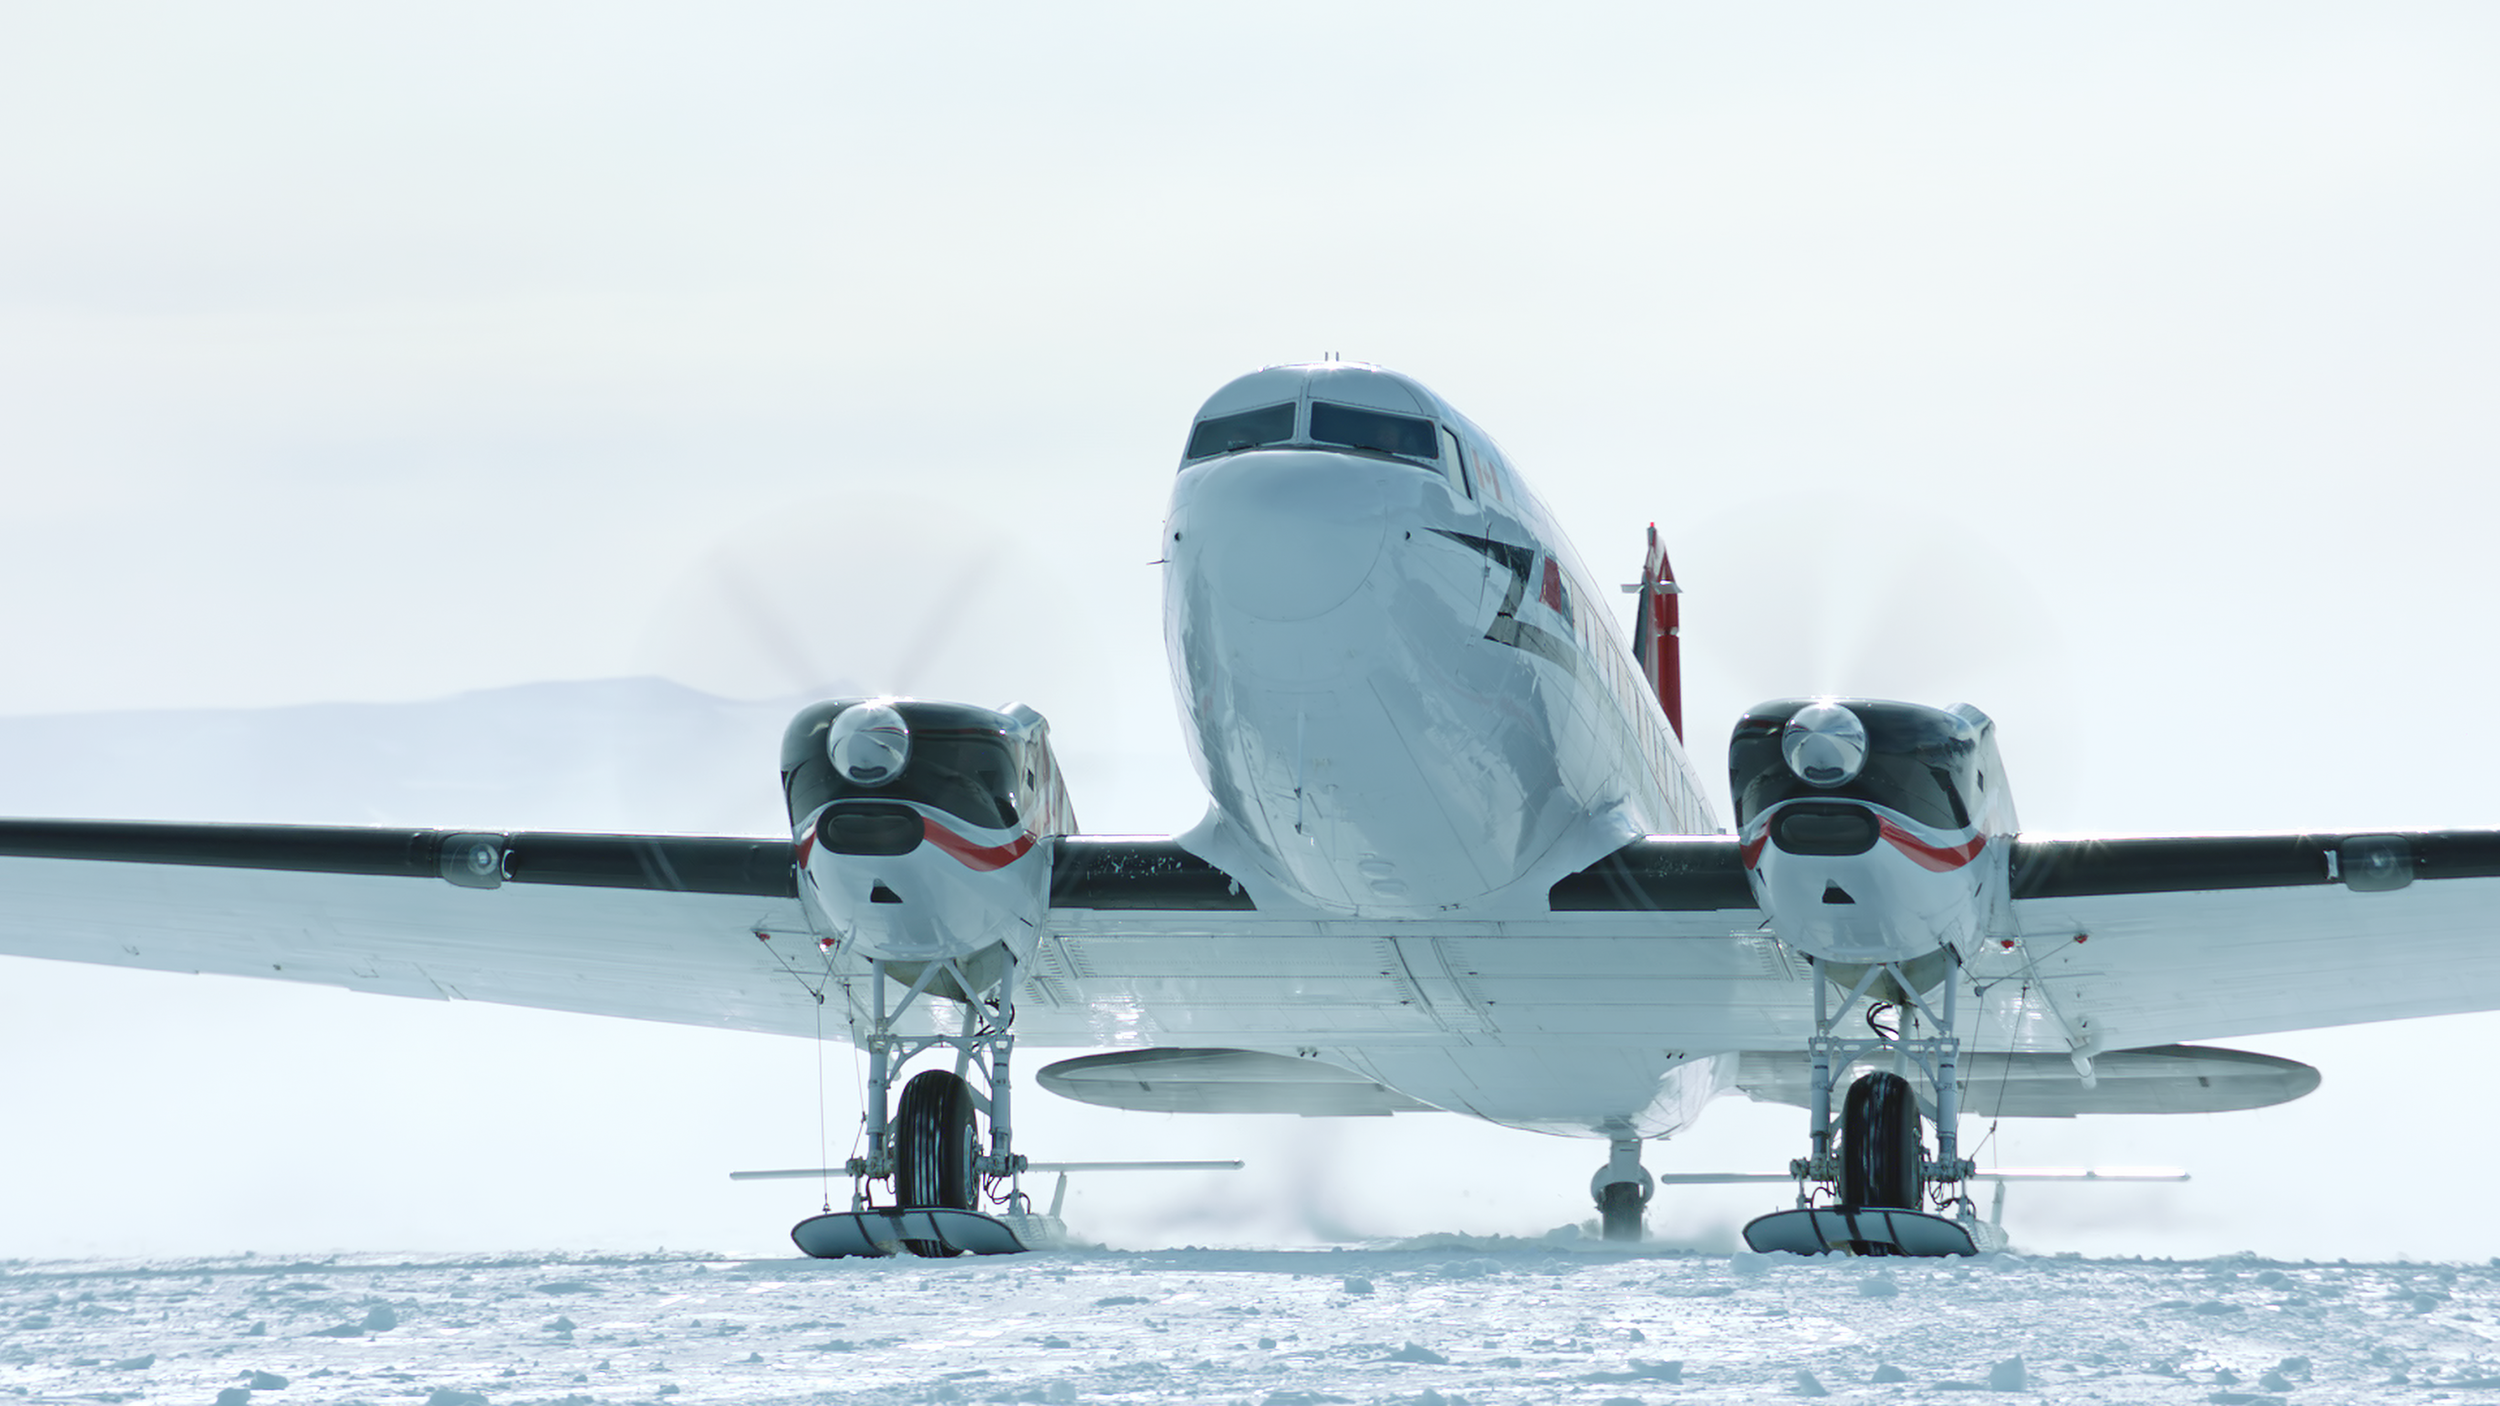 DC-3 taxiing in Union Glacier, Antarctica.